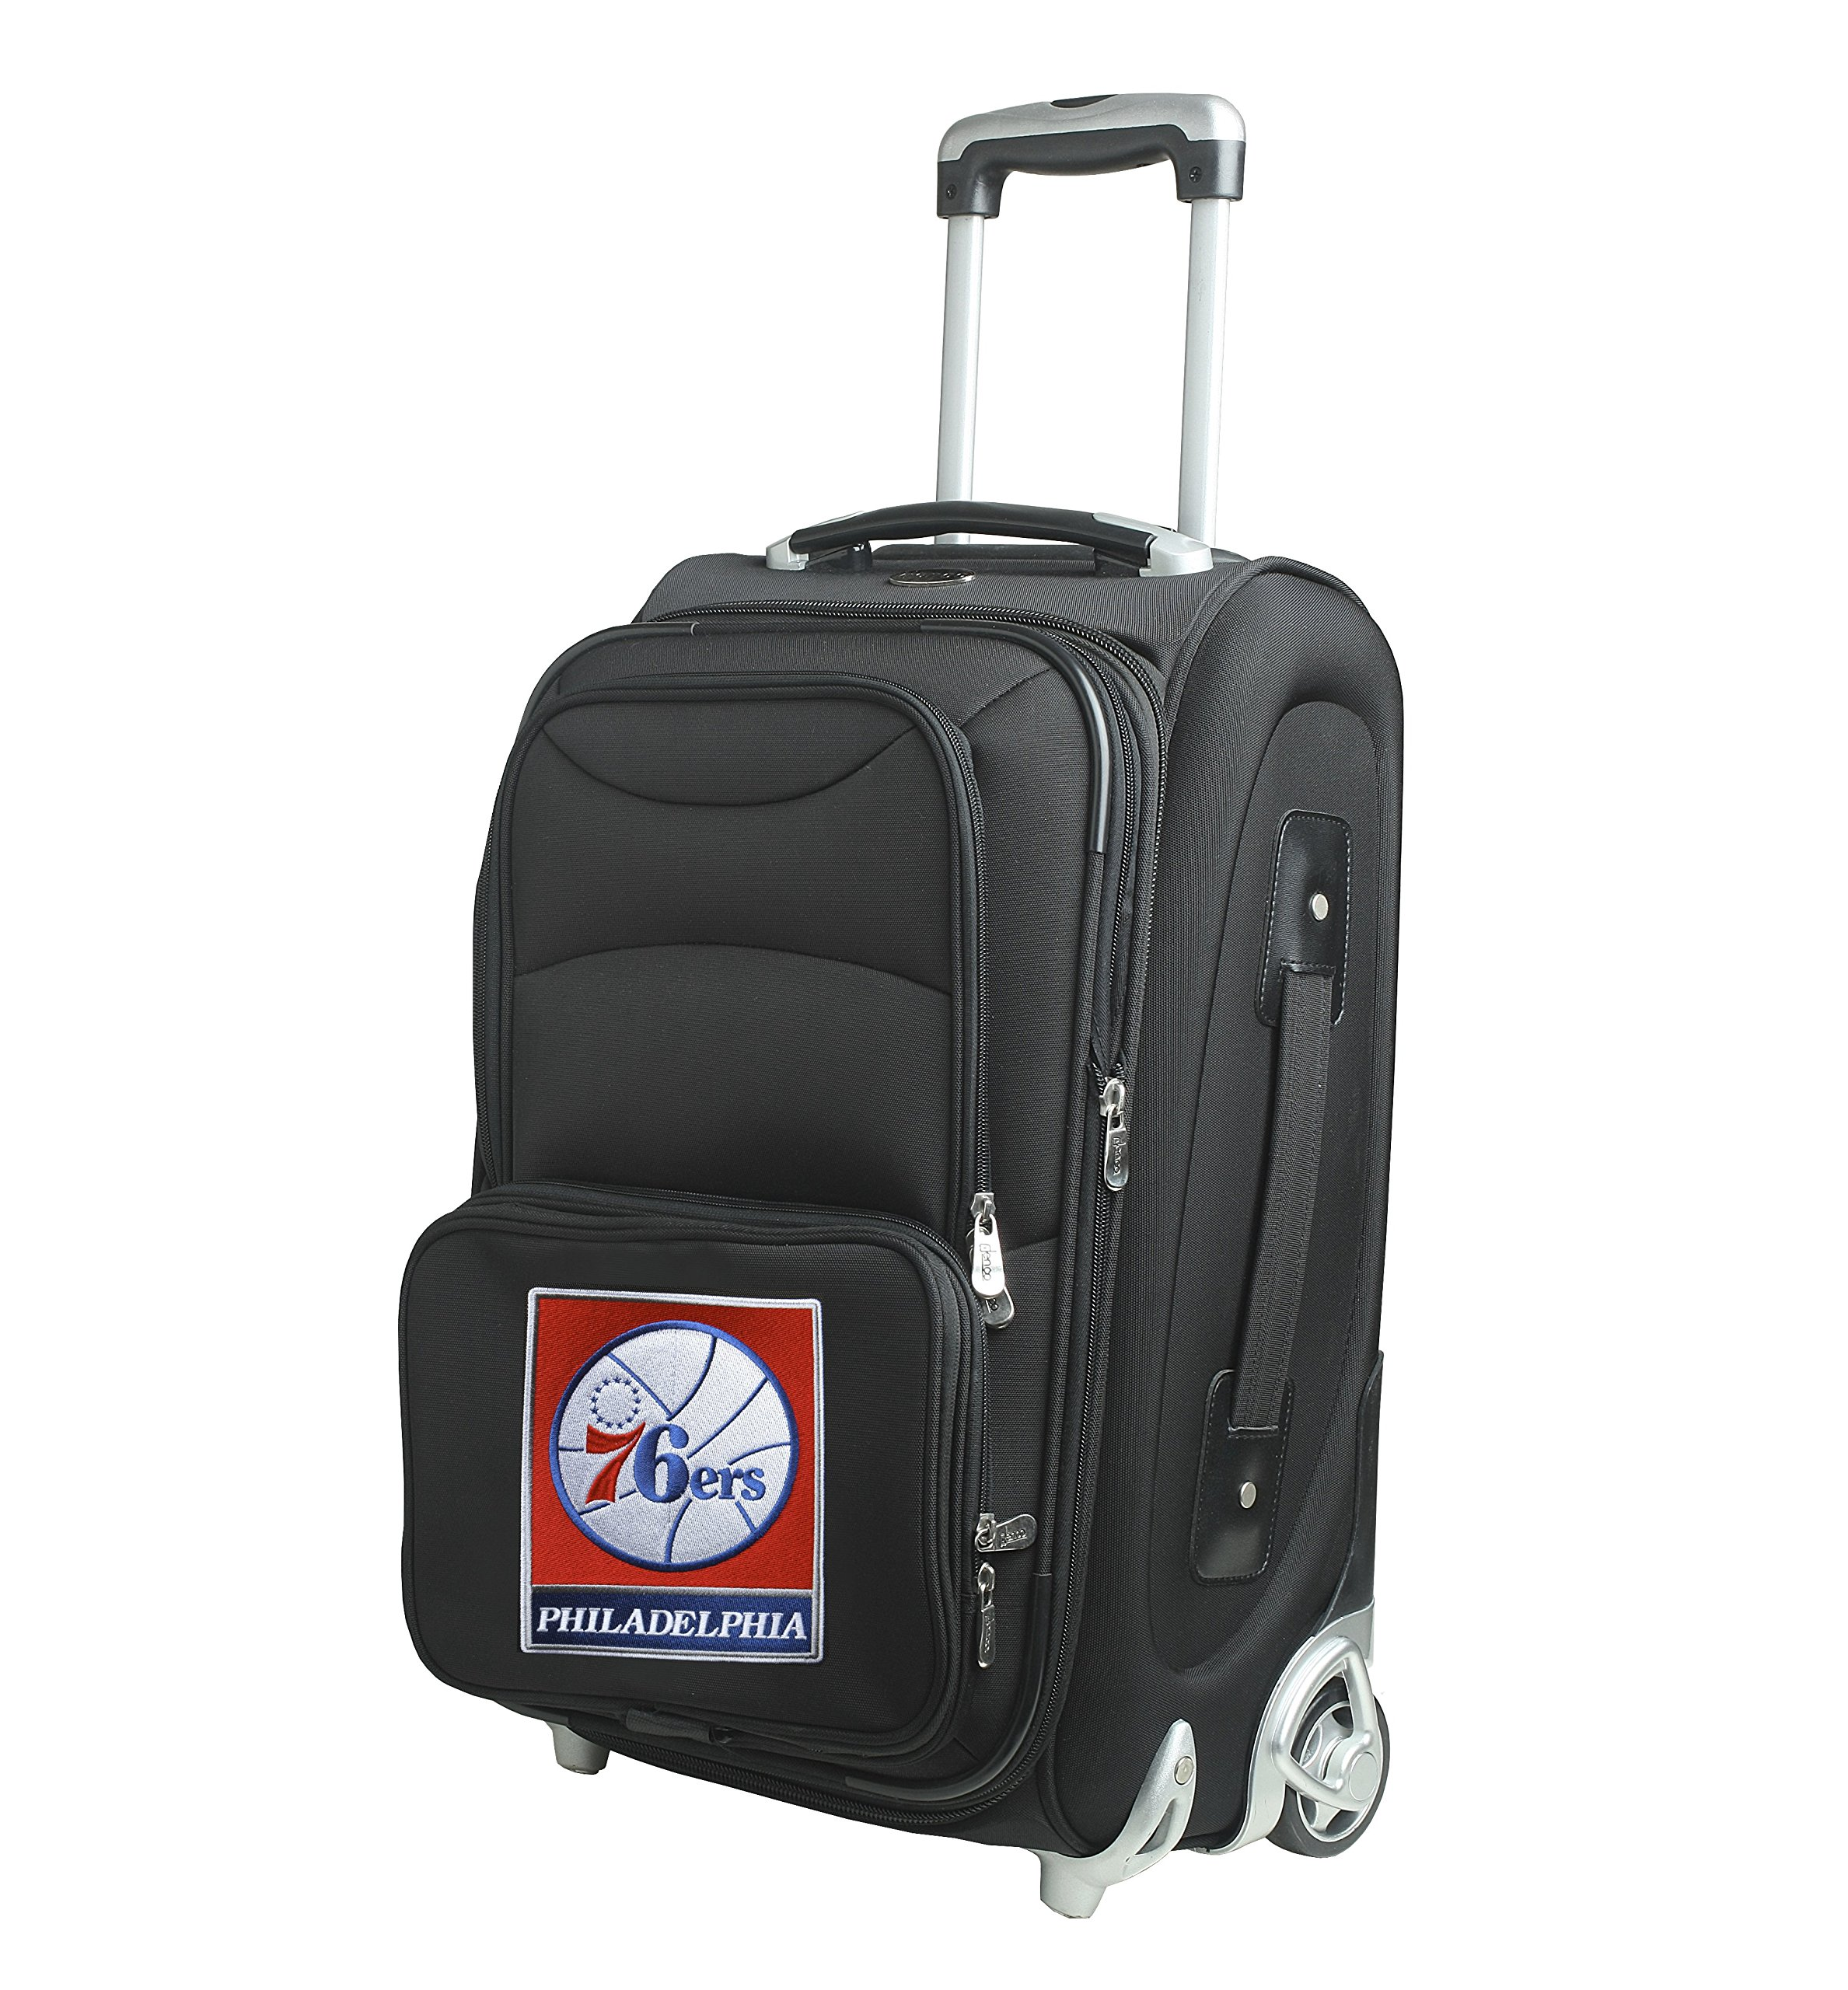 NBA Philadelphia 76ers In-Line Skate Wheel Carry-On Luggage, 21-Inch, Black